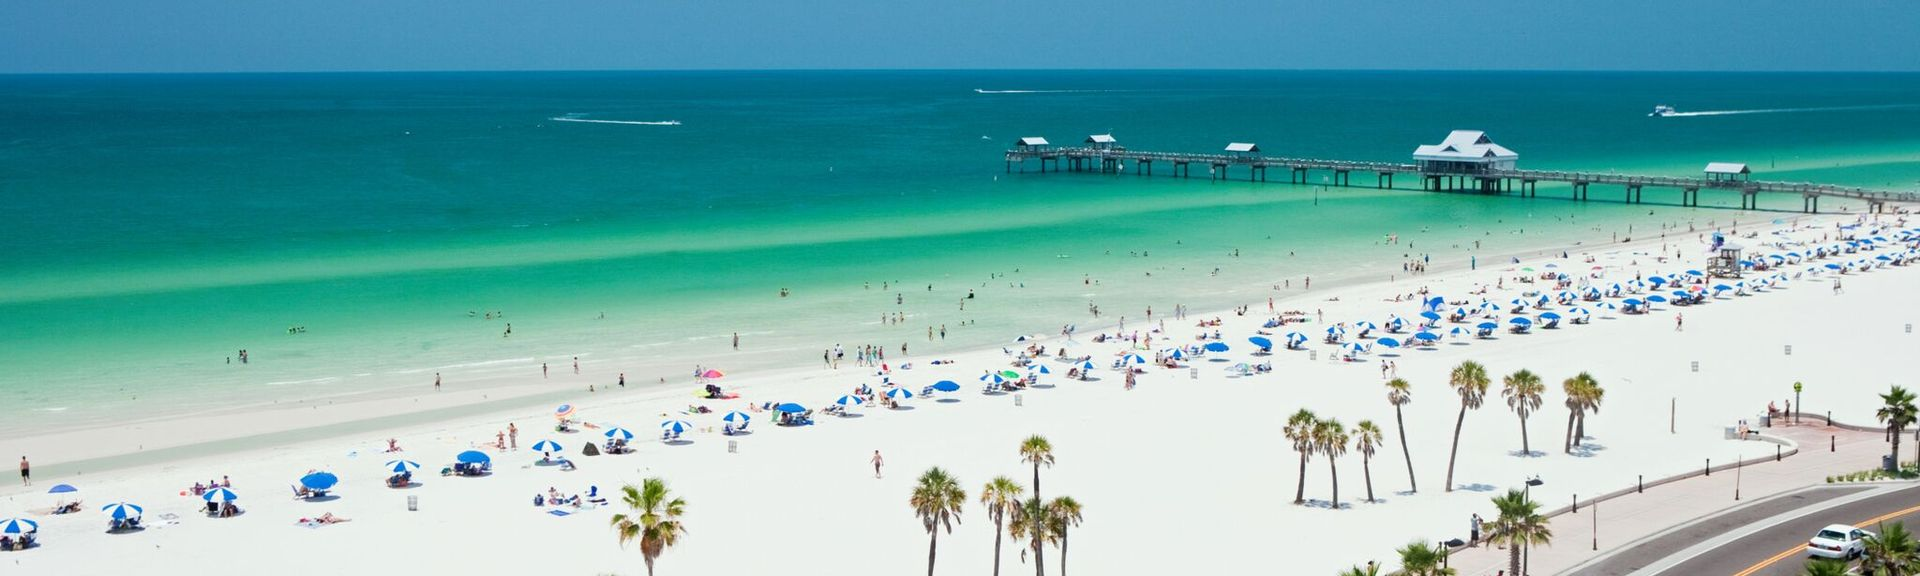 Clearwater, Florida, United States of America